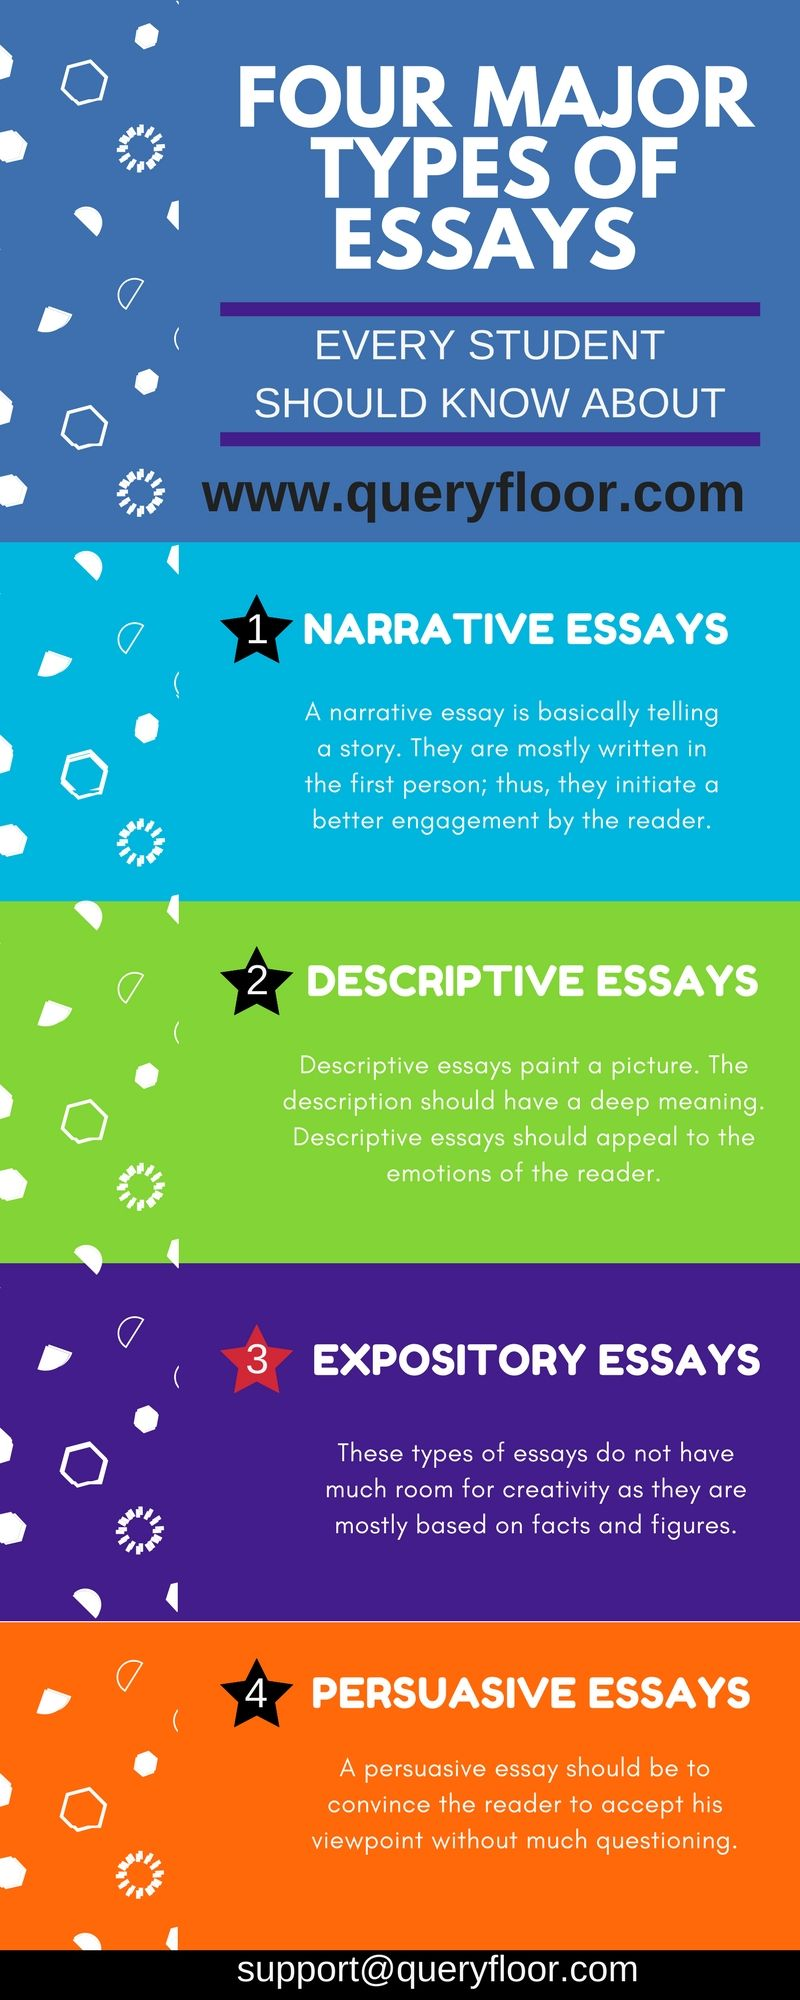 How To Write An Essay Fast  Activities  Essay Writing Student  How To Write An Essay Fast Art History Help also Someone To Do My Assignment  Best English Essays